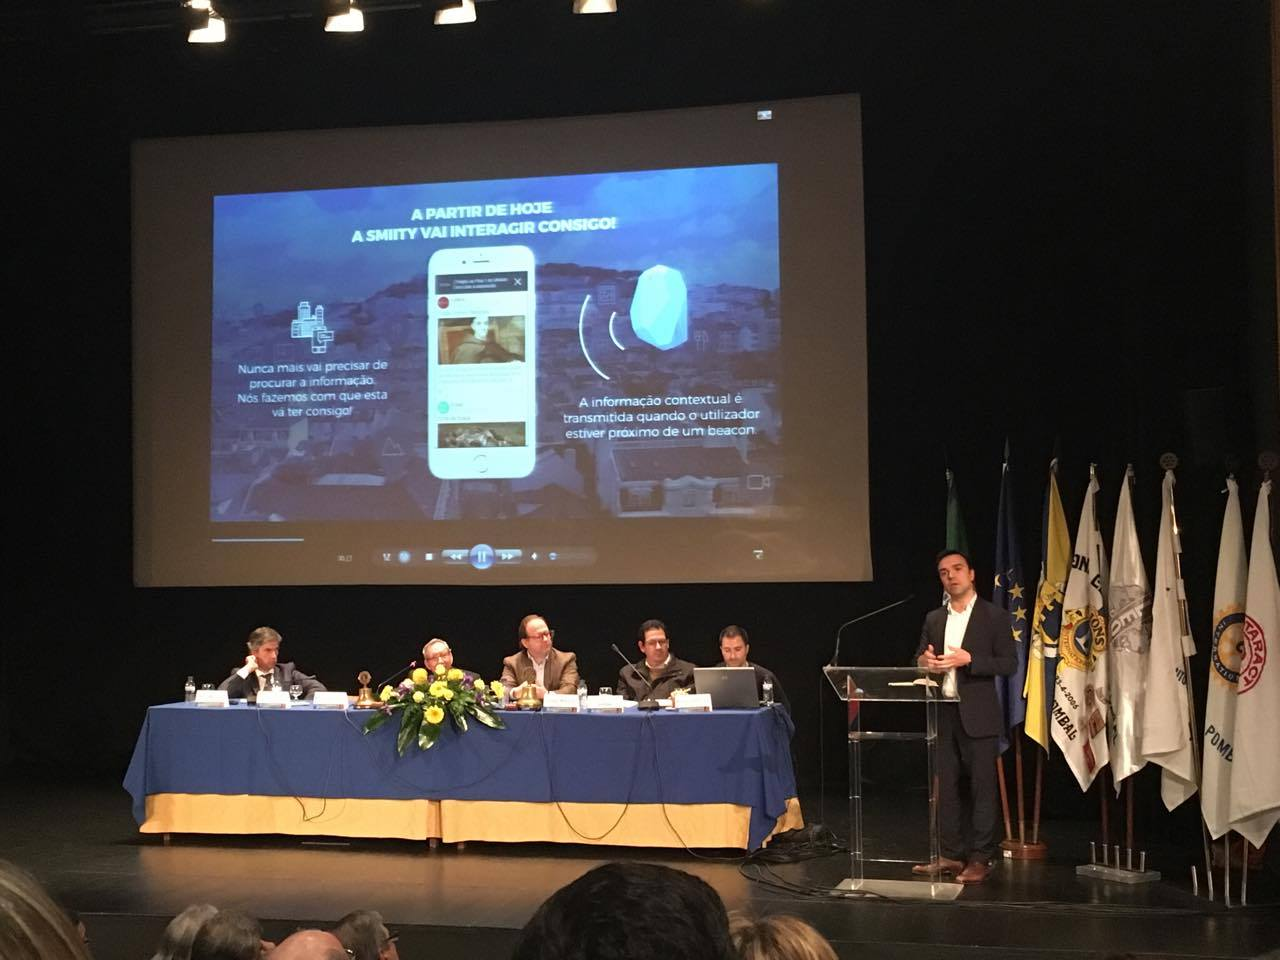 SMIITY highlighted at conference on Religious Tourism